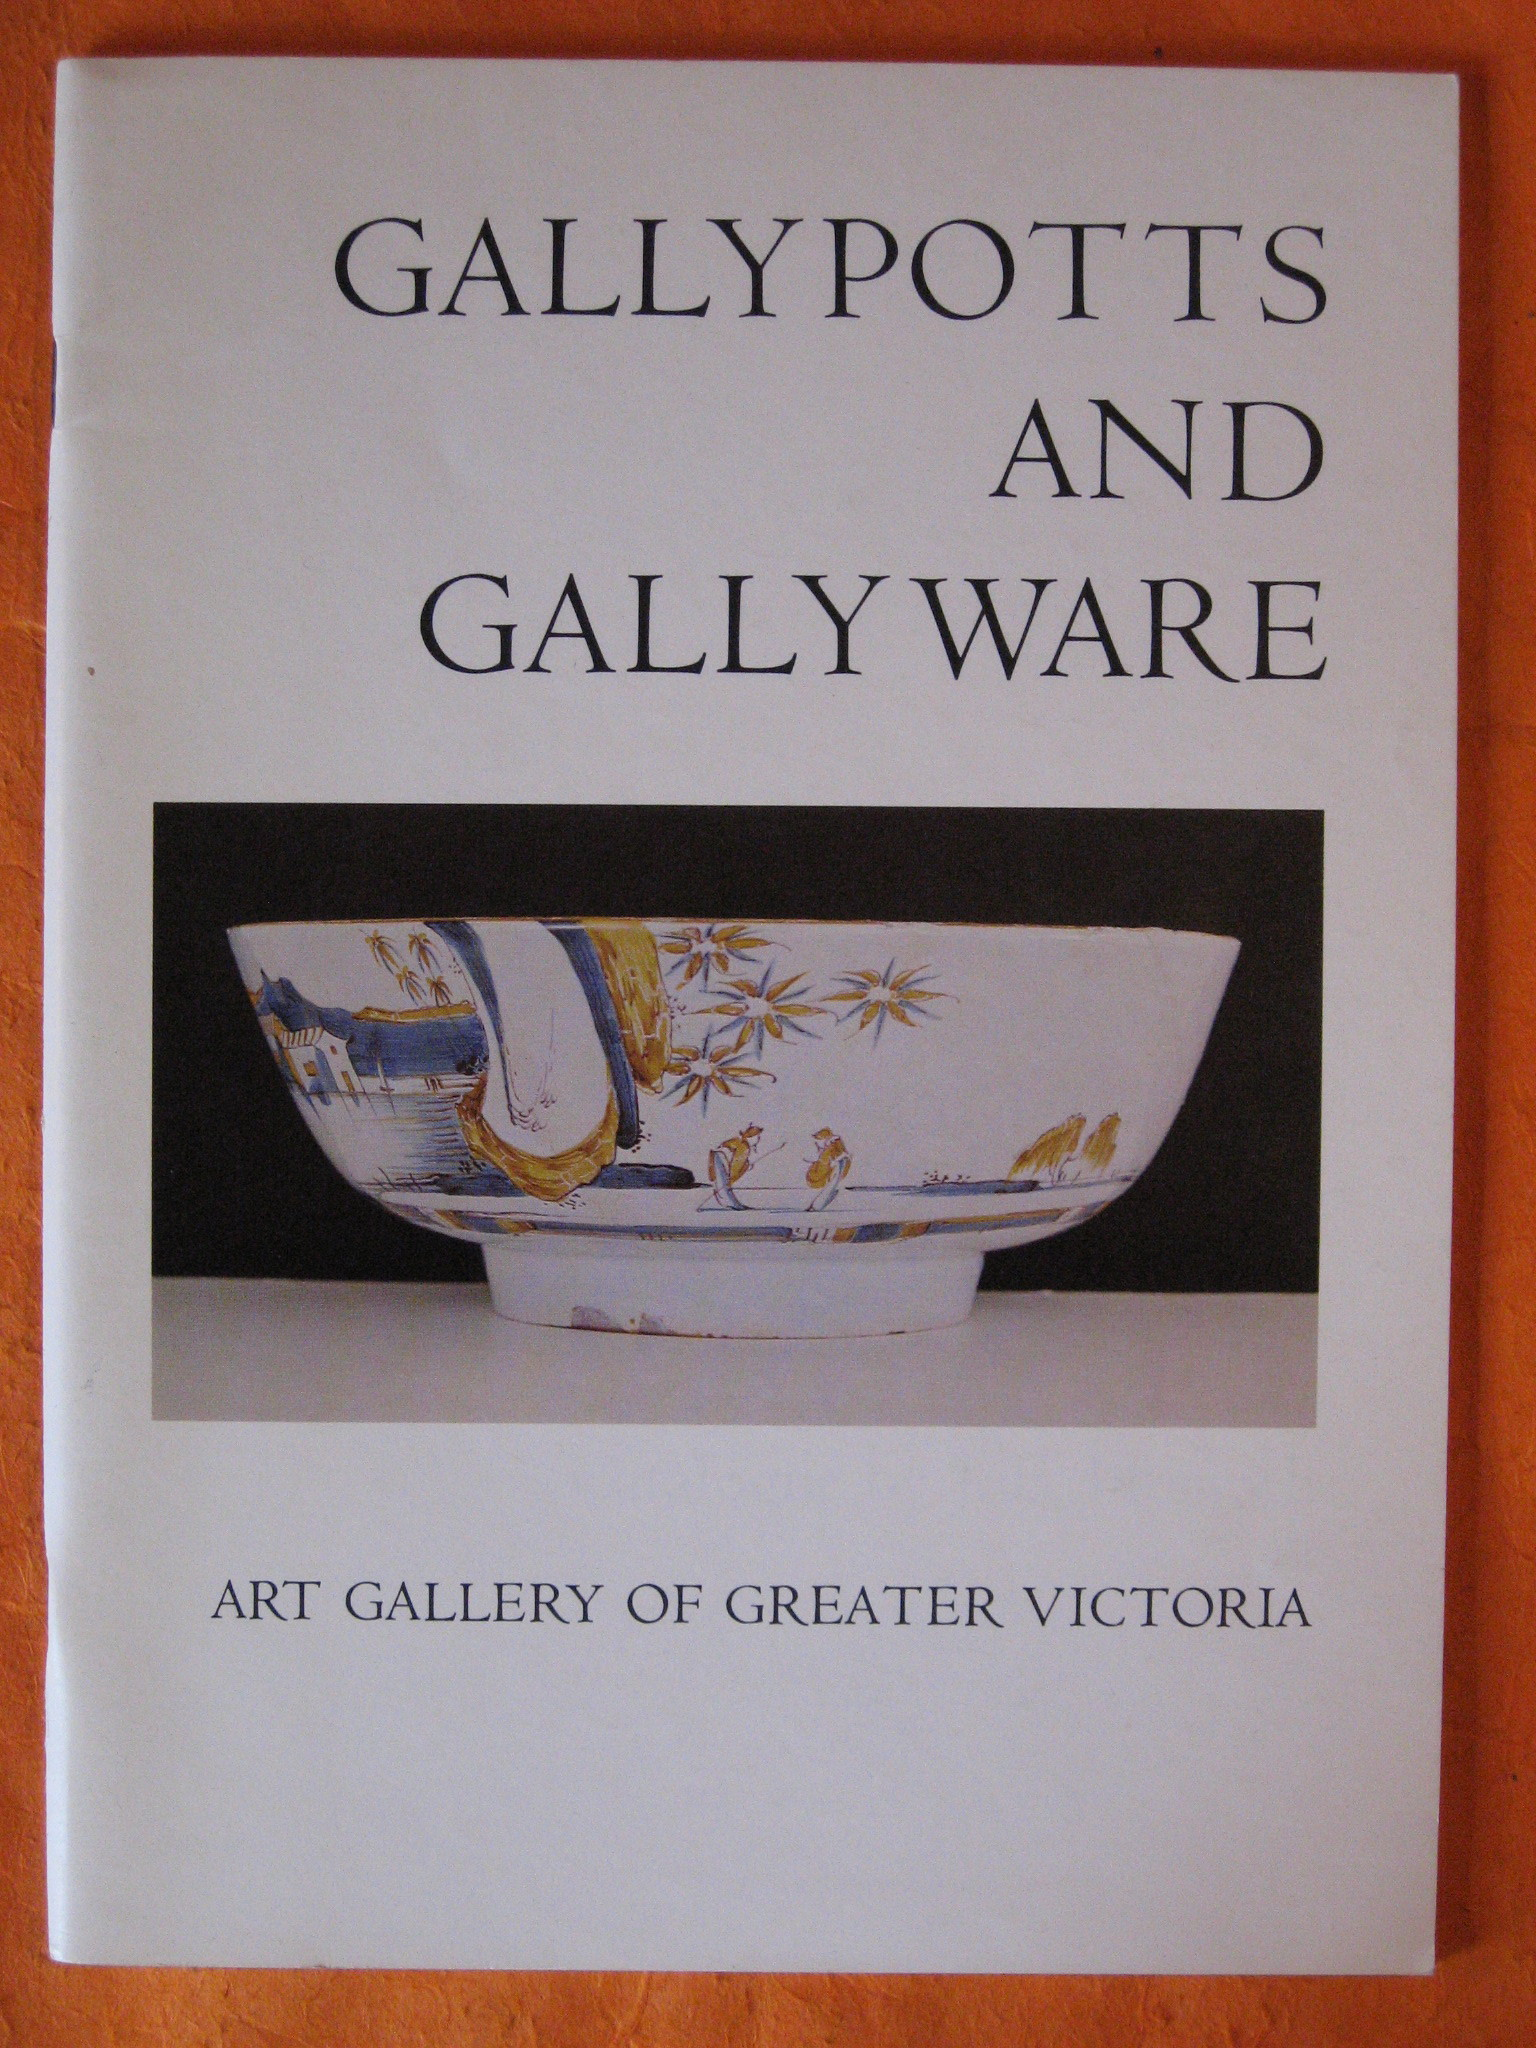 Gallypotts and gallyware: An annotated catalogue of an exhibition of seventeenth and eighteenth century English delftware, Victoria, fall 1979, Horvath, J.E.